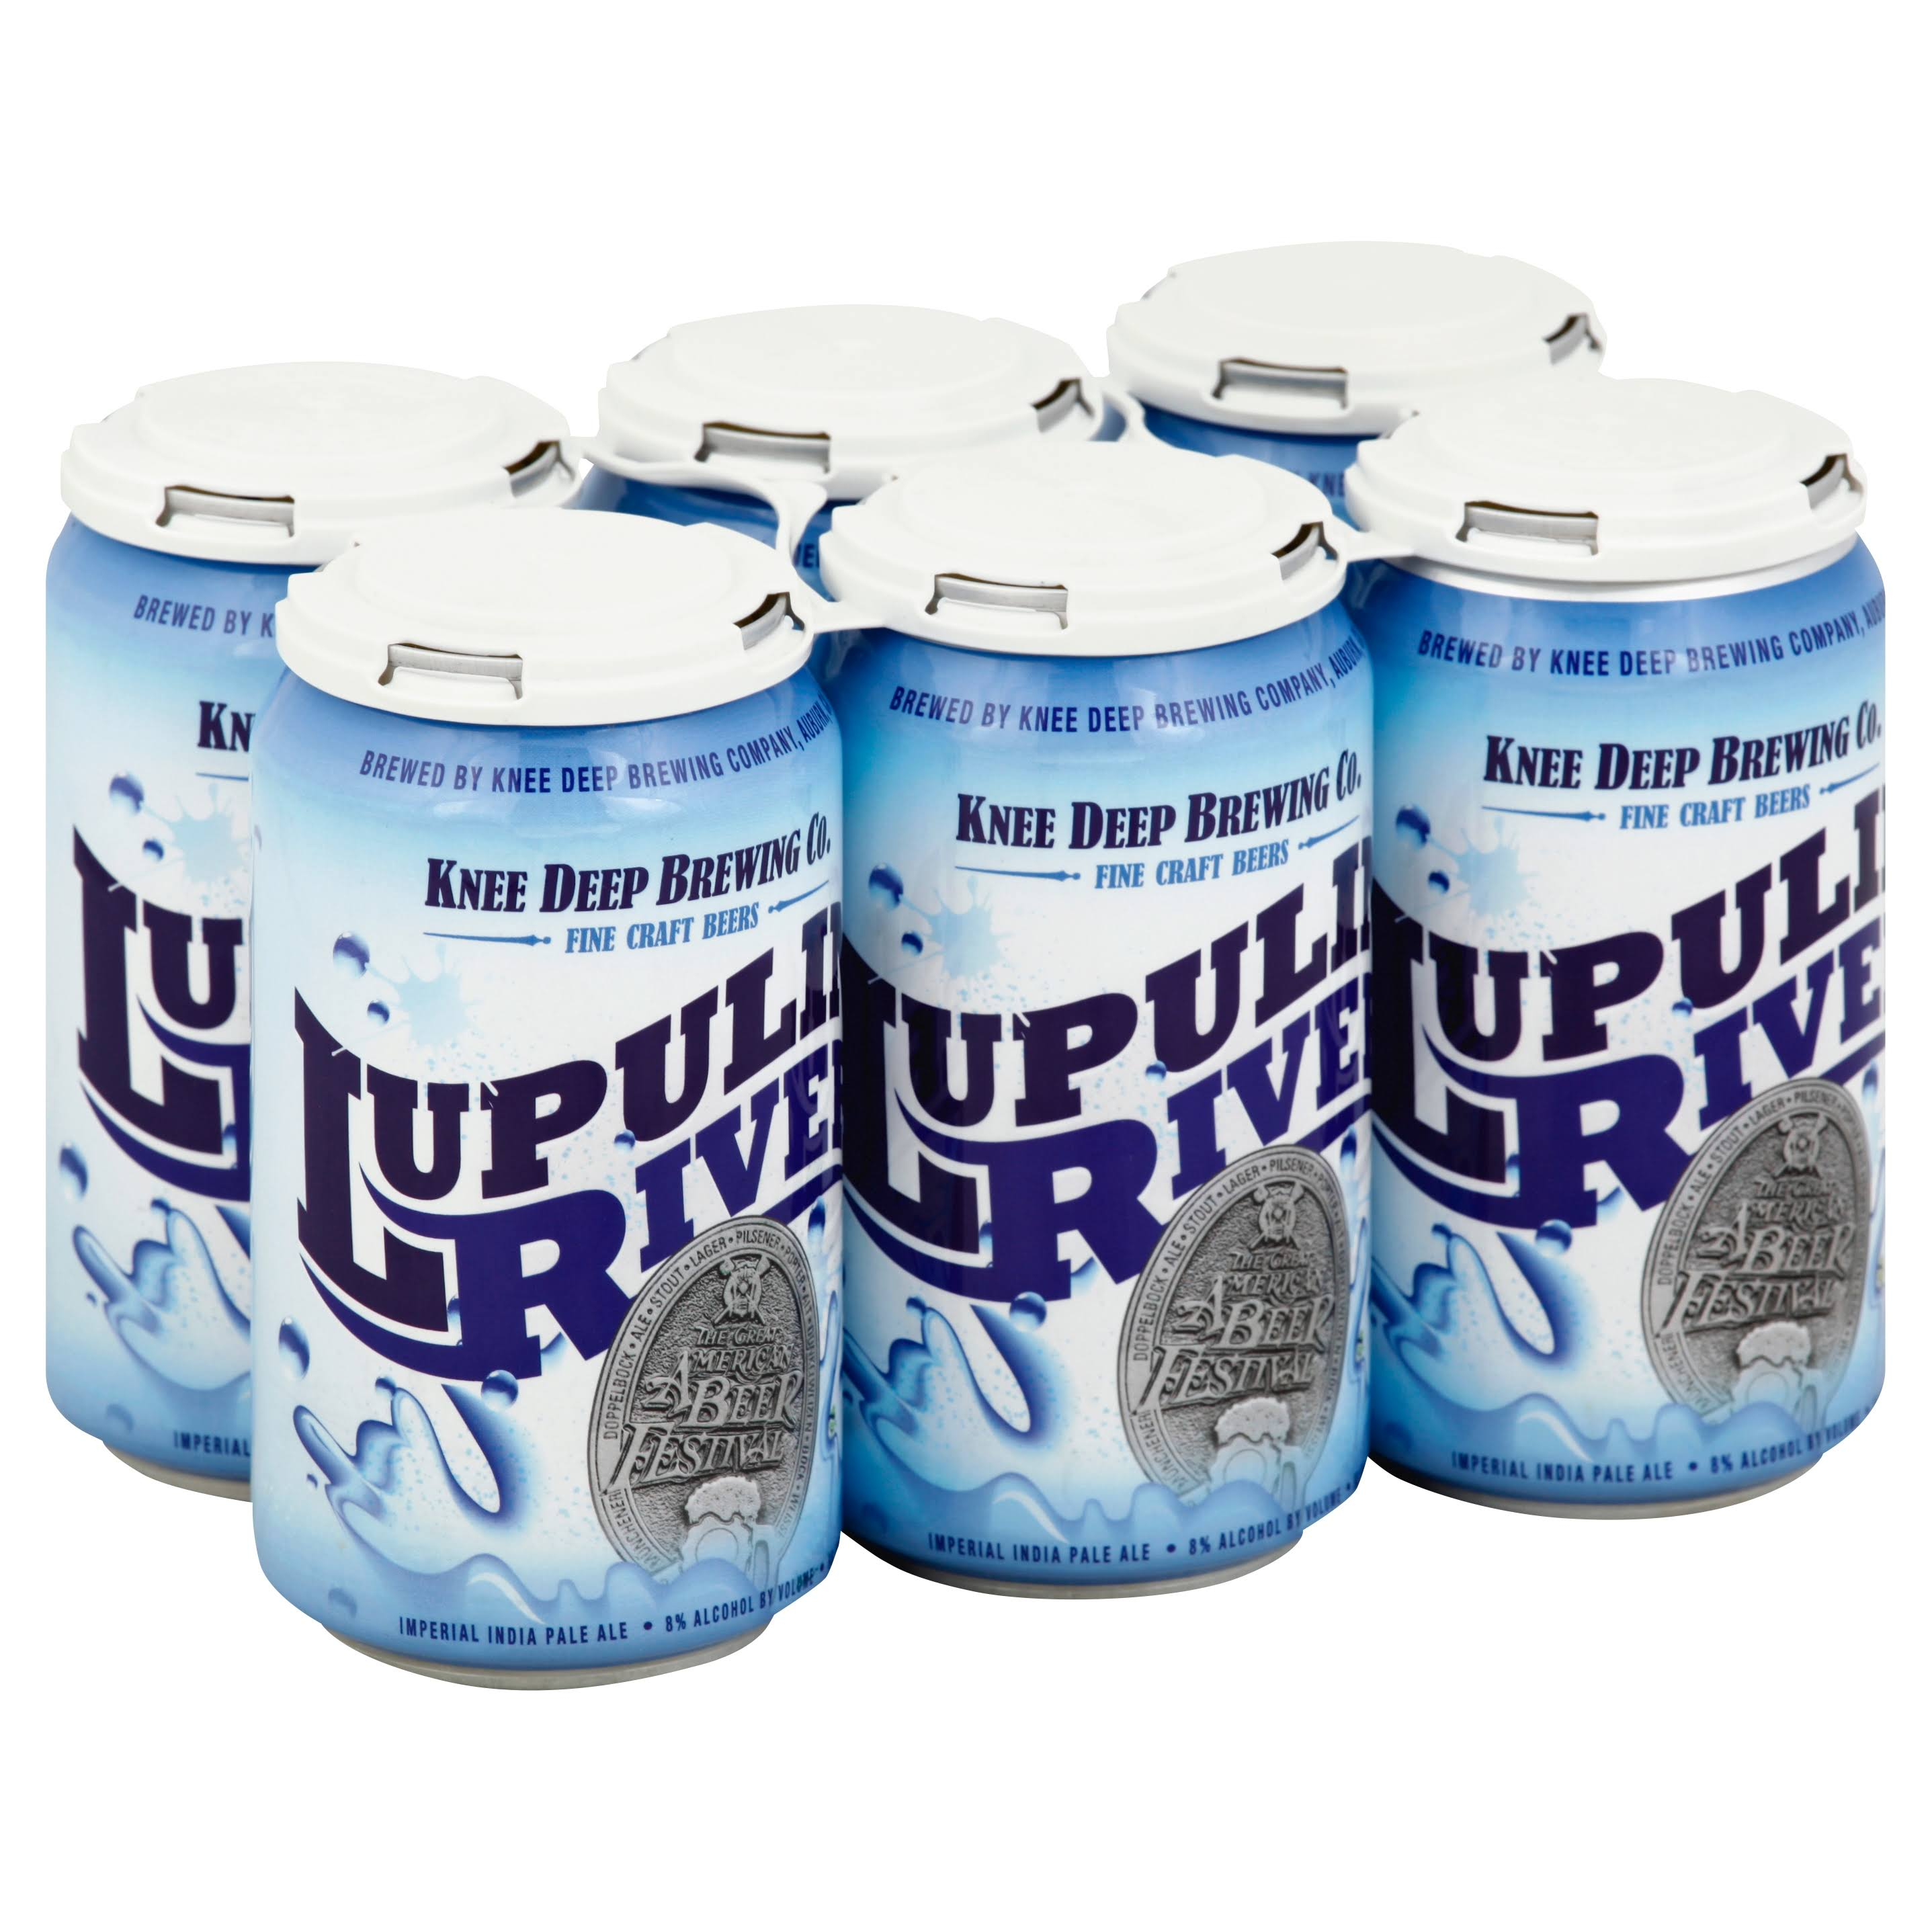 Knee Deep Brewing Beer, Imperial India Pale Ale, Lupulin River - 6 pack, 12 fl oz cans